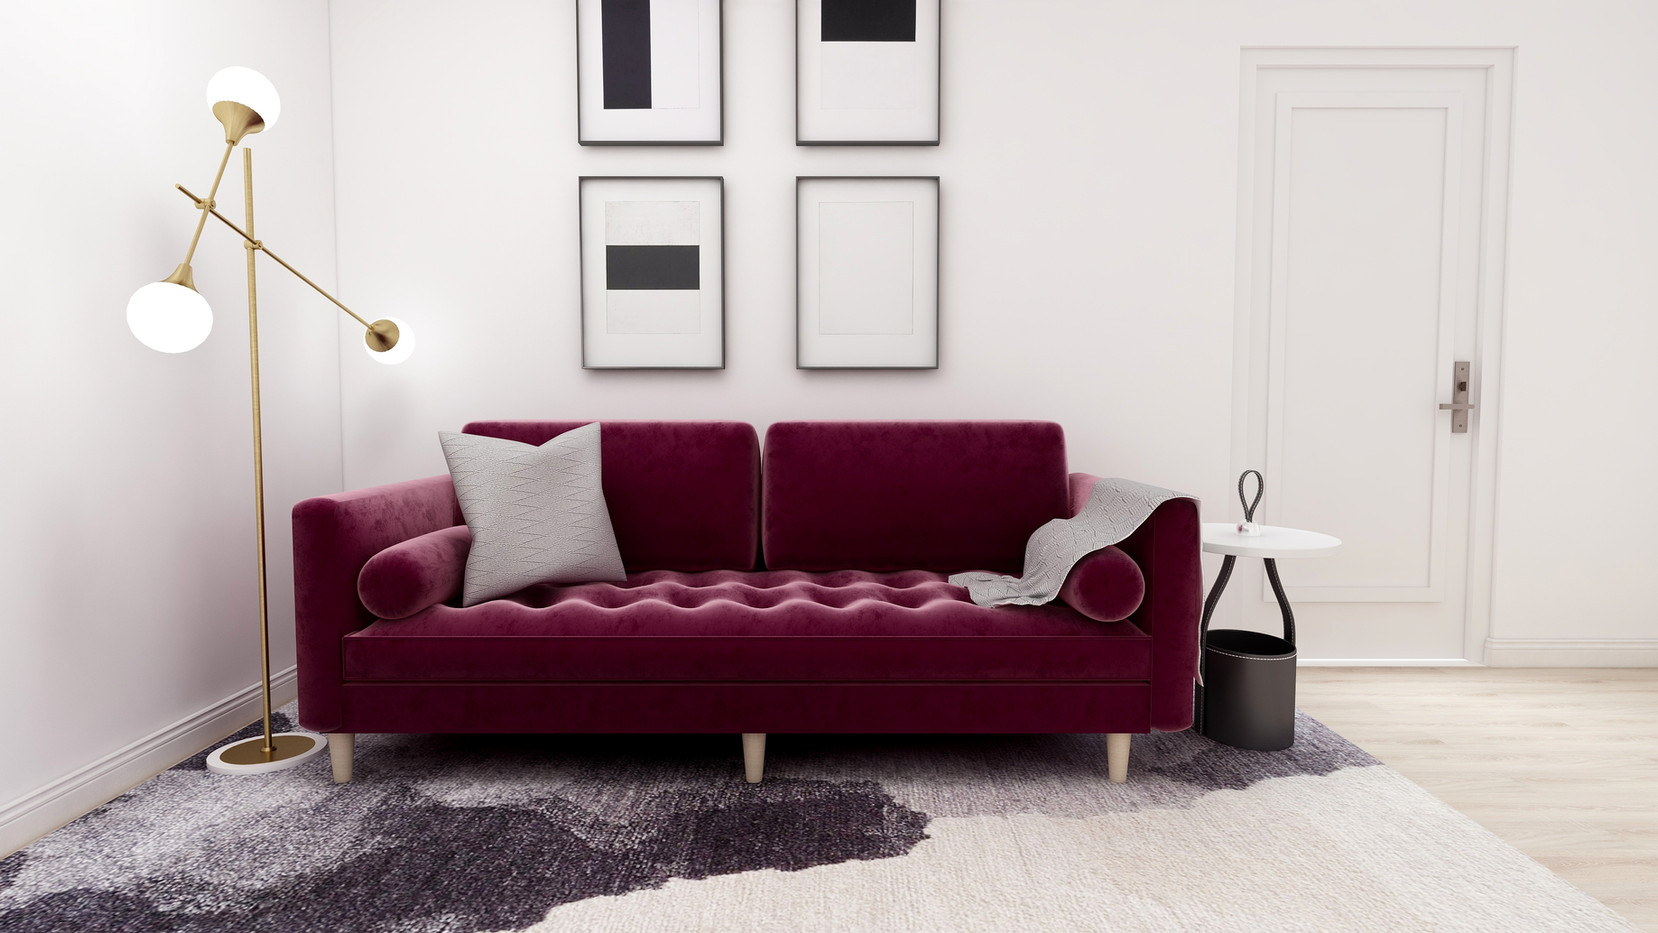 Sofa created in sketchup